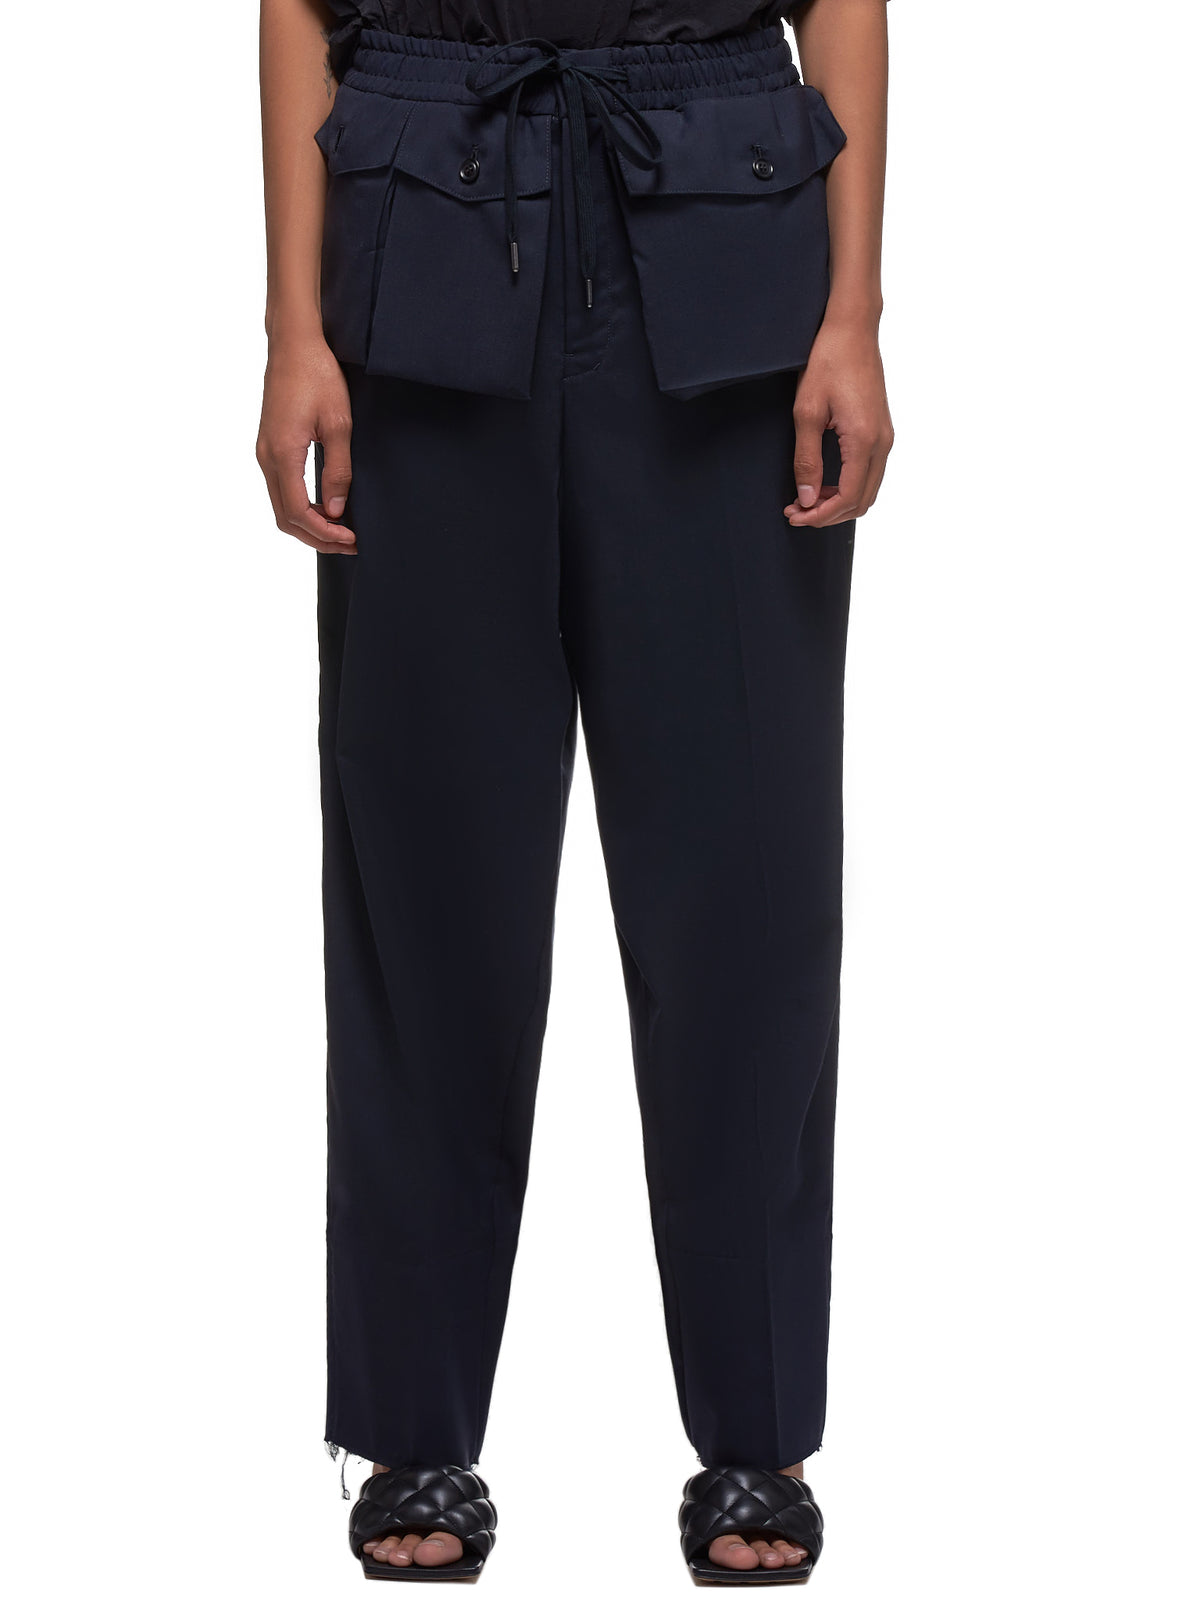 Asymmetrical Trousers (YS-P41-130-NAVY)